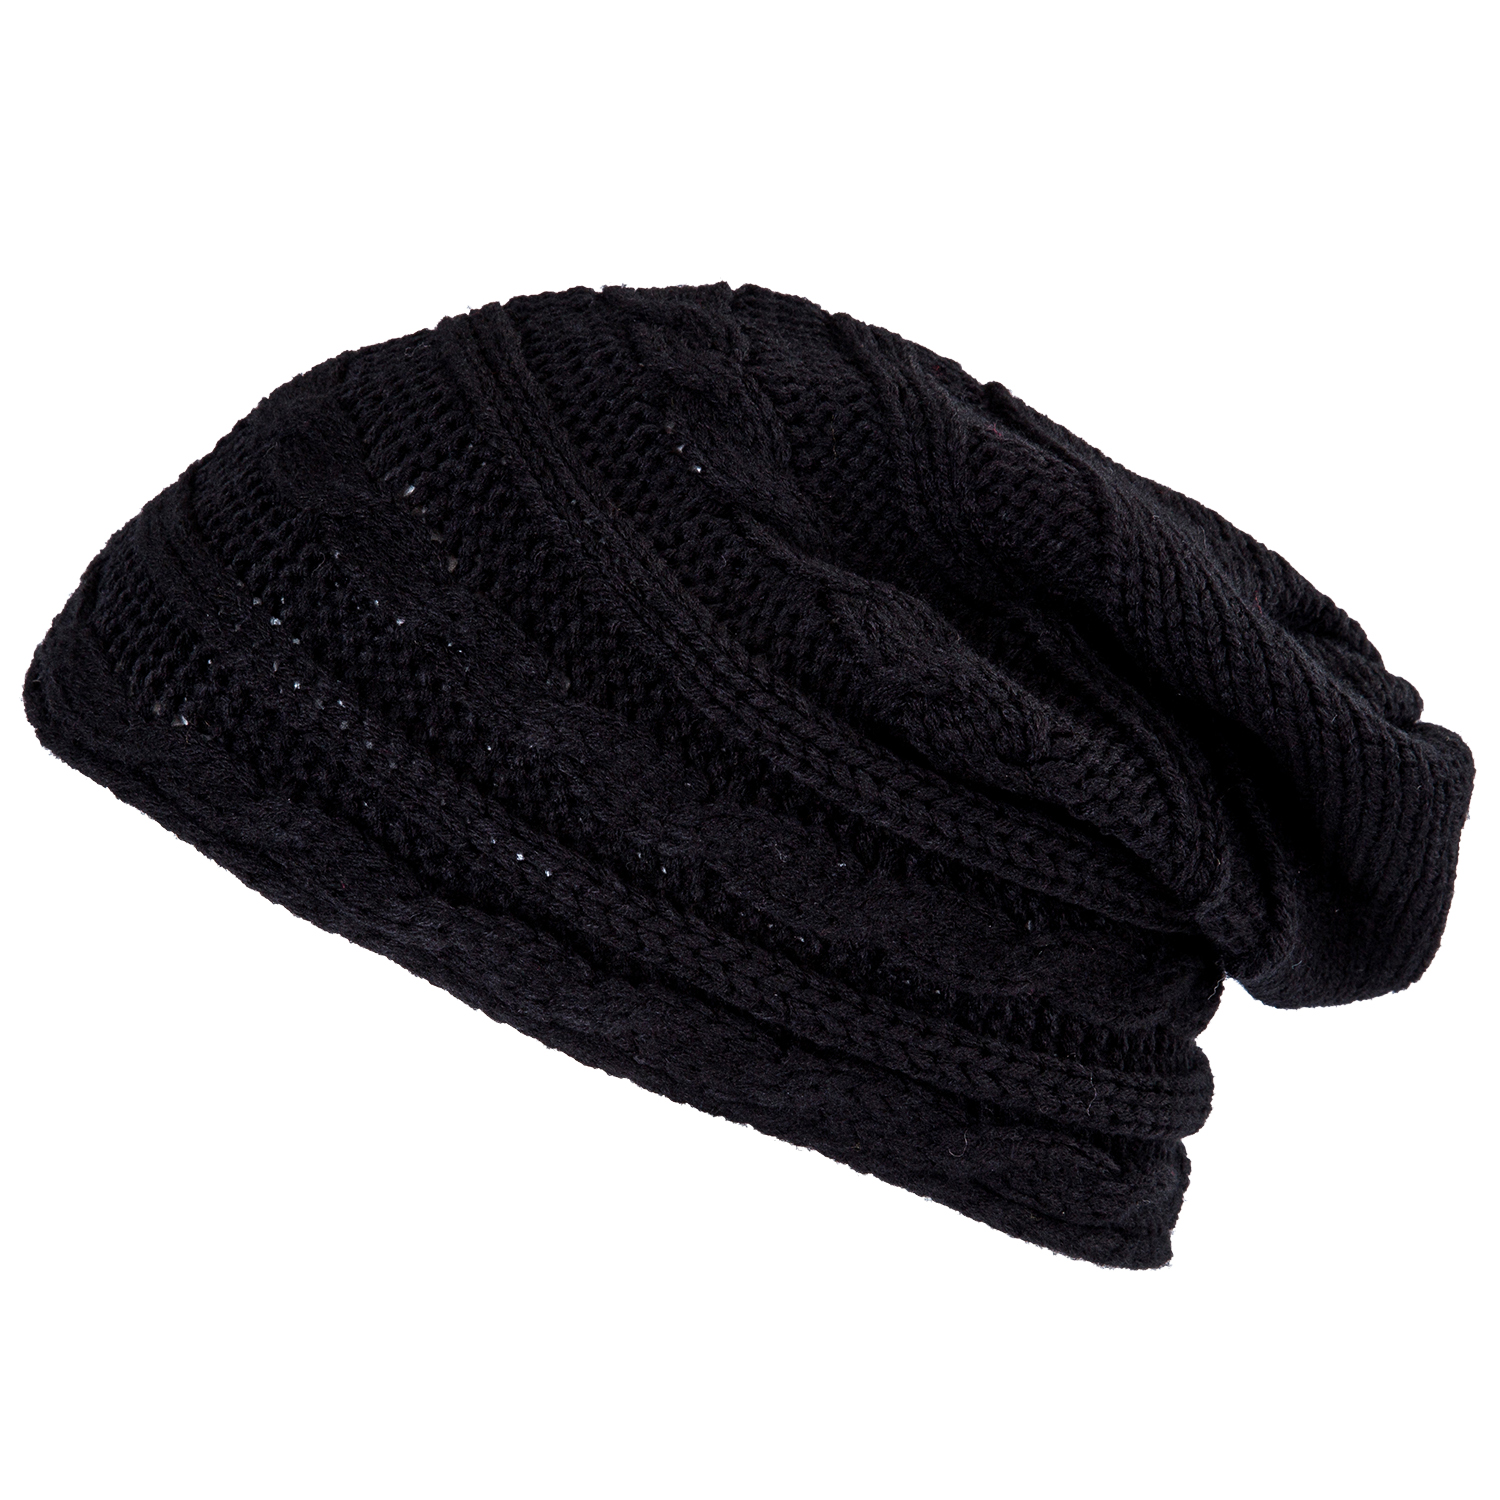 TFGS 10 x Winter Black Oversized Knit Baggy Beanie Slouch Hat Unisex Fashion Gift